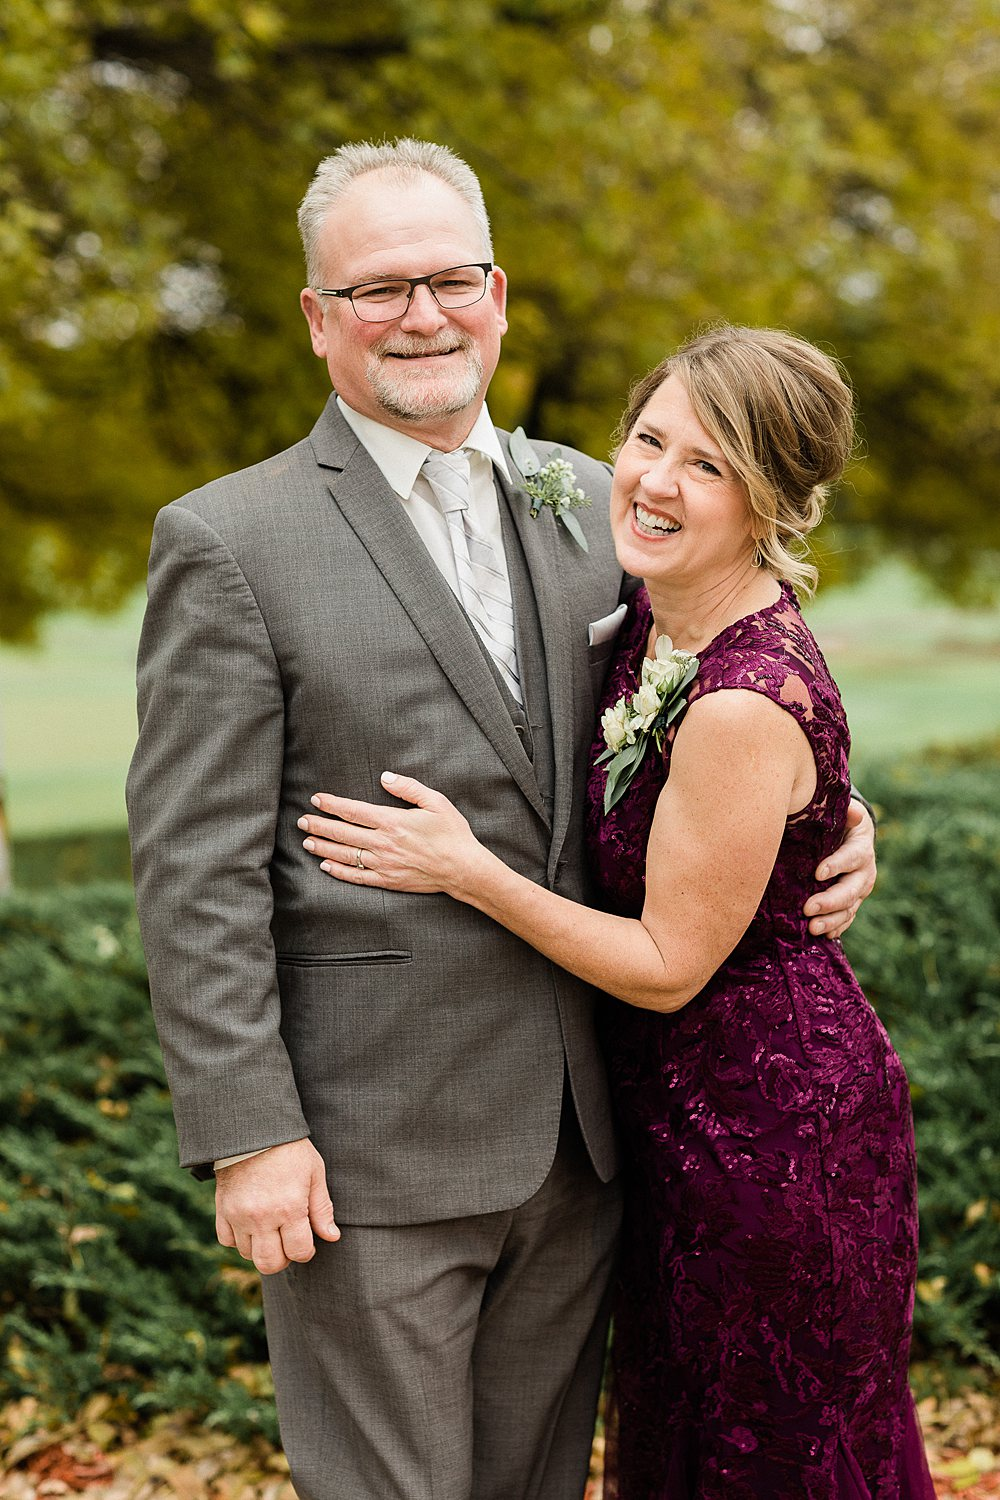 North_Central_Wisconsin_Event_Wedding_Venues_Fall_Weddings_The_Bailiwick_Venue_James-Stokes-Photography044.jpg